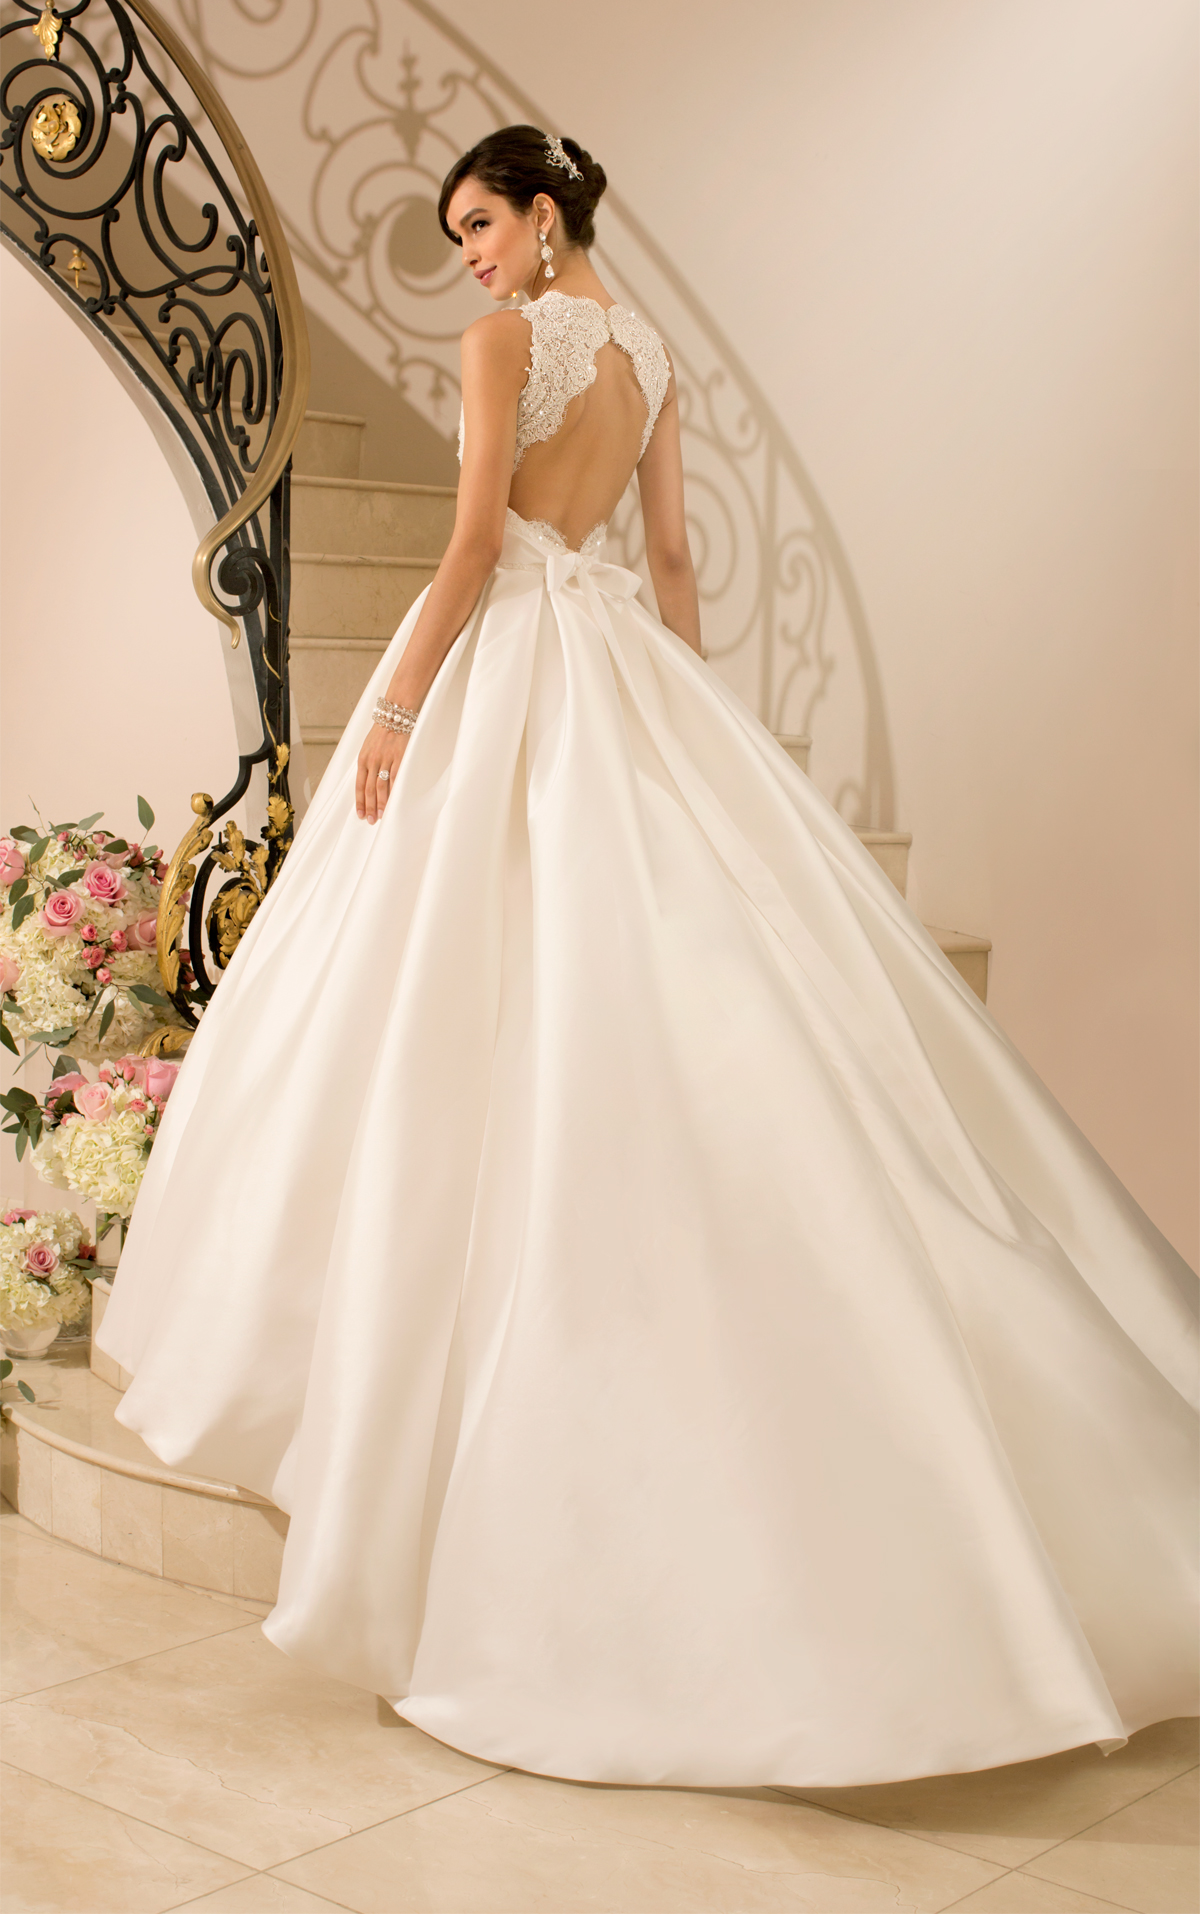 HOW TO FIND A WEDDING DRESS ON A BUDGET  fashionistabudget